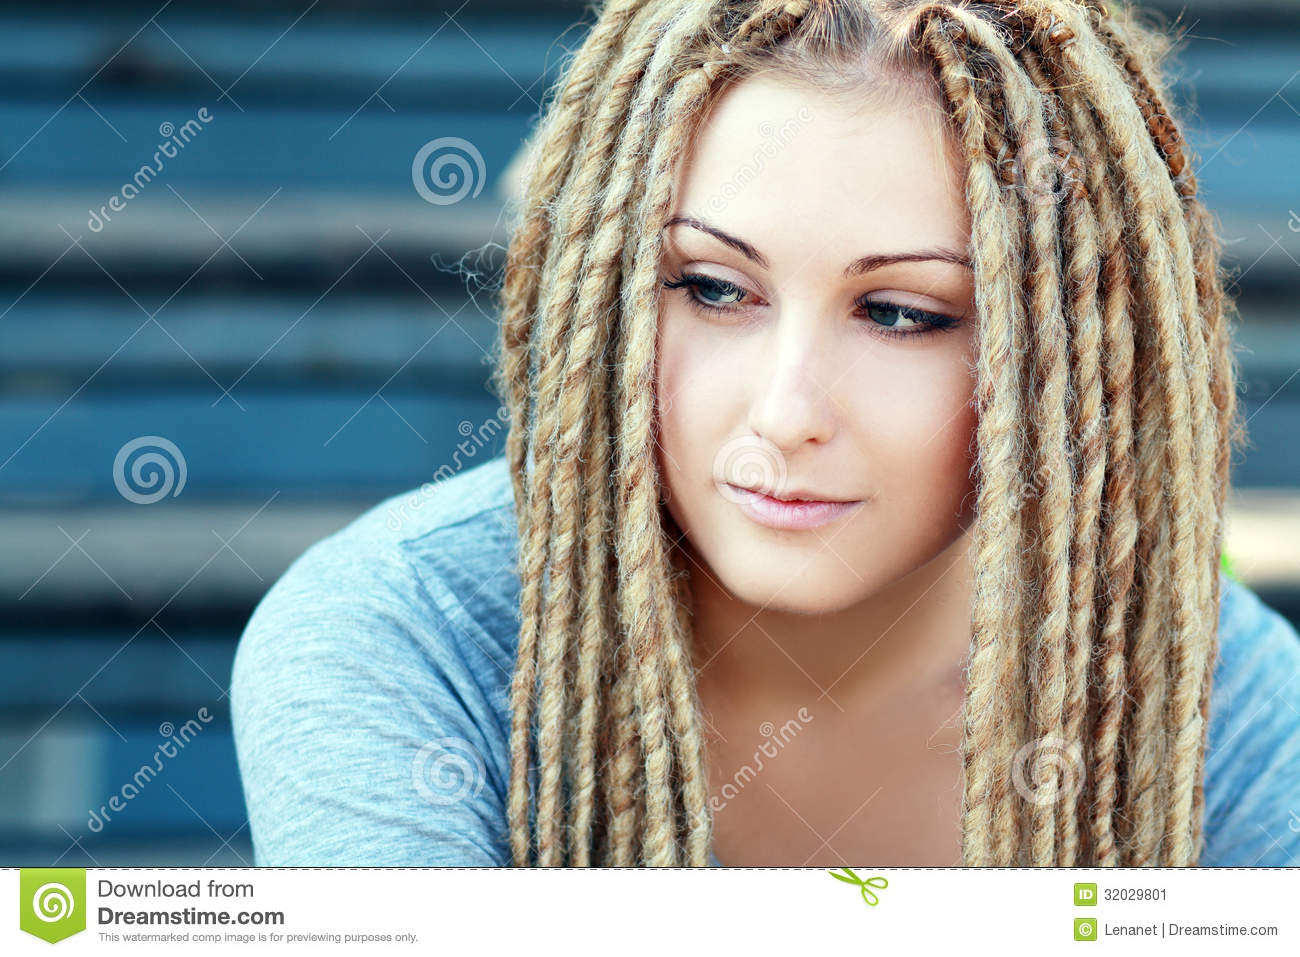 Fashion Hairstyle With Dreads Stock Image Image Of Female